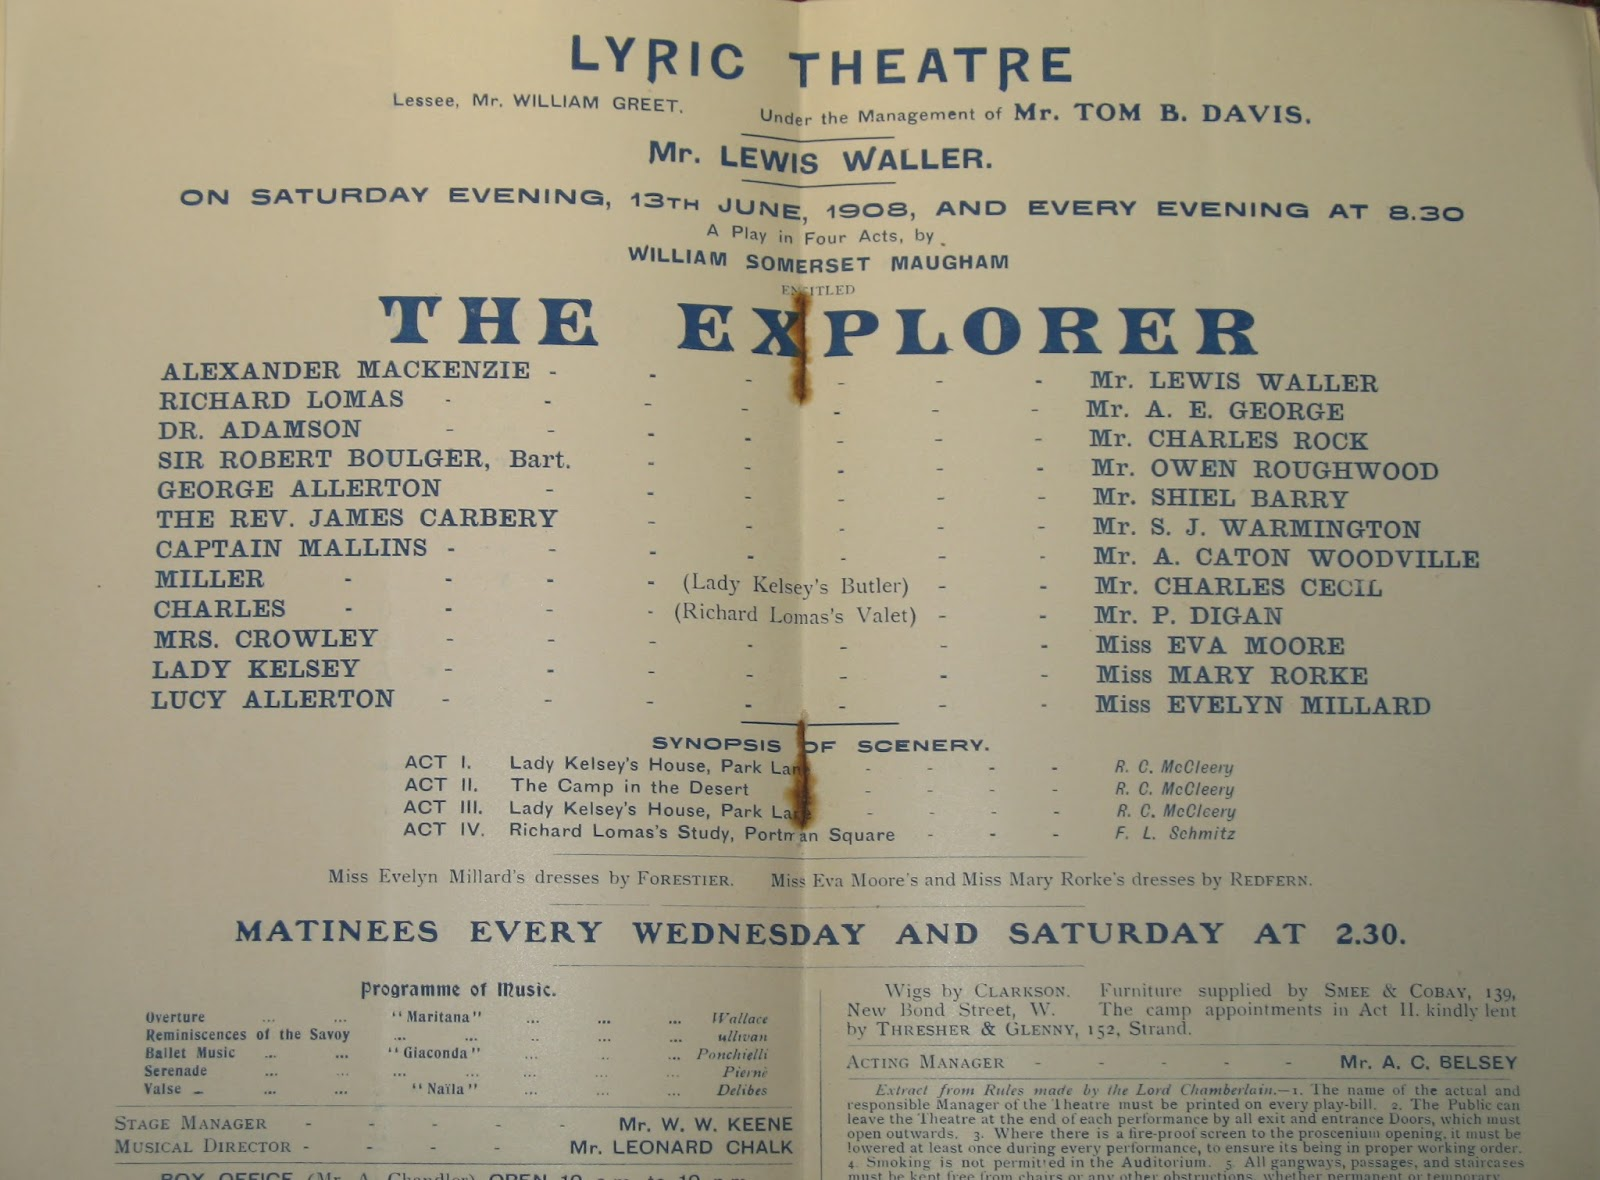 The Explorer by W. Somerset Maugham, Theatrical Programme 1908